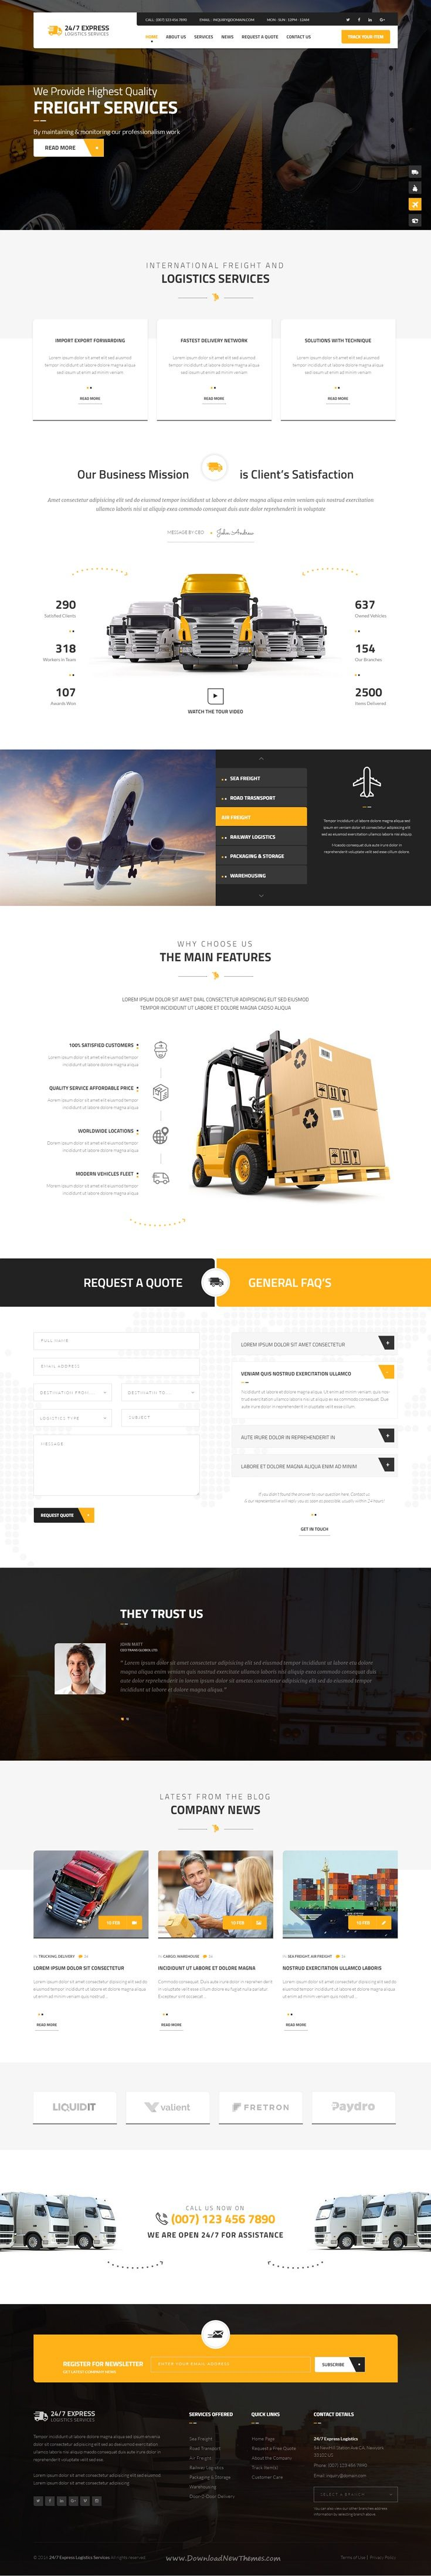 24/7 Express Cargo Services is a Multipurpose #Bootstrap HTML suitable for cargo, #logistics, trucking, transportation companies, warehouse and freight business #website. Check out http://www.imedia.click for more amazing info on all things effective online marketing